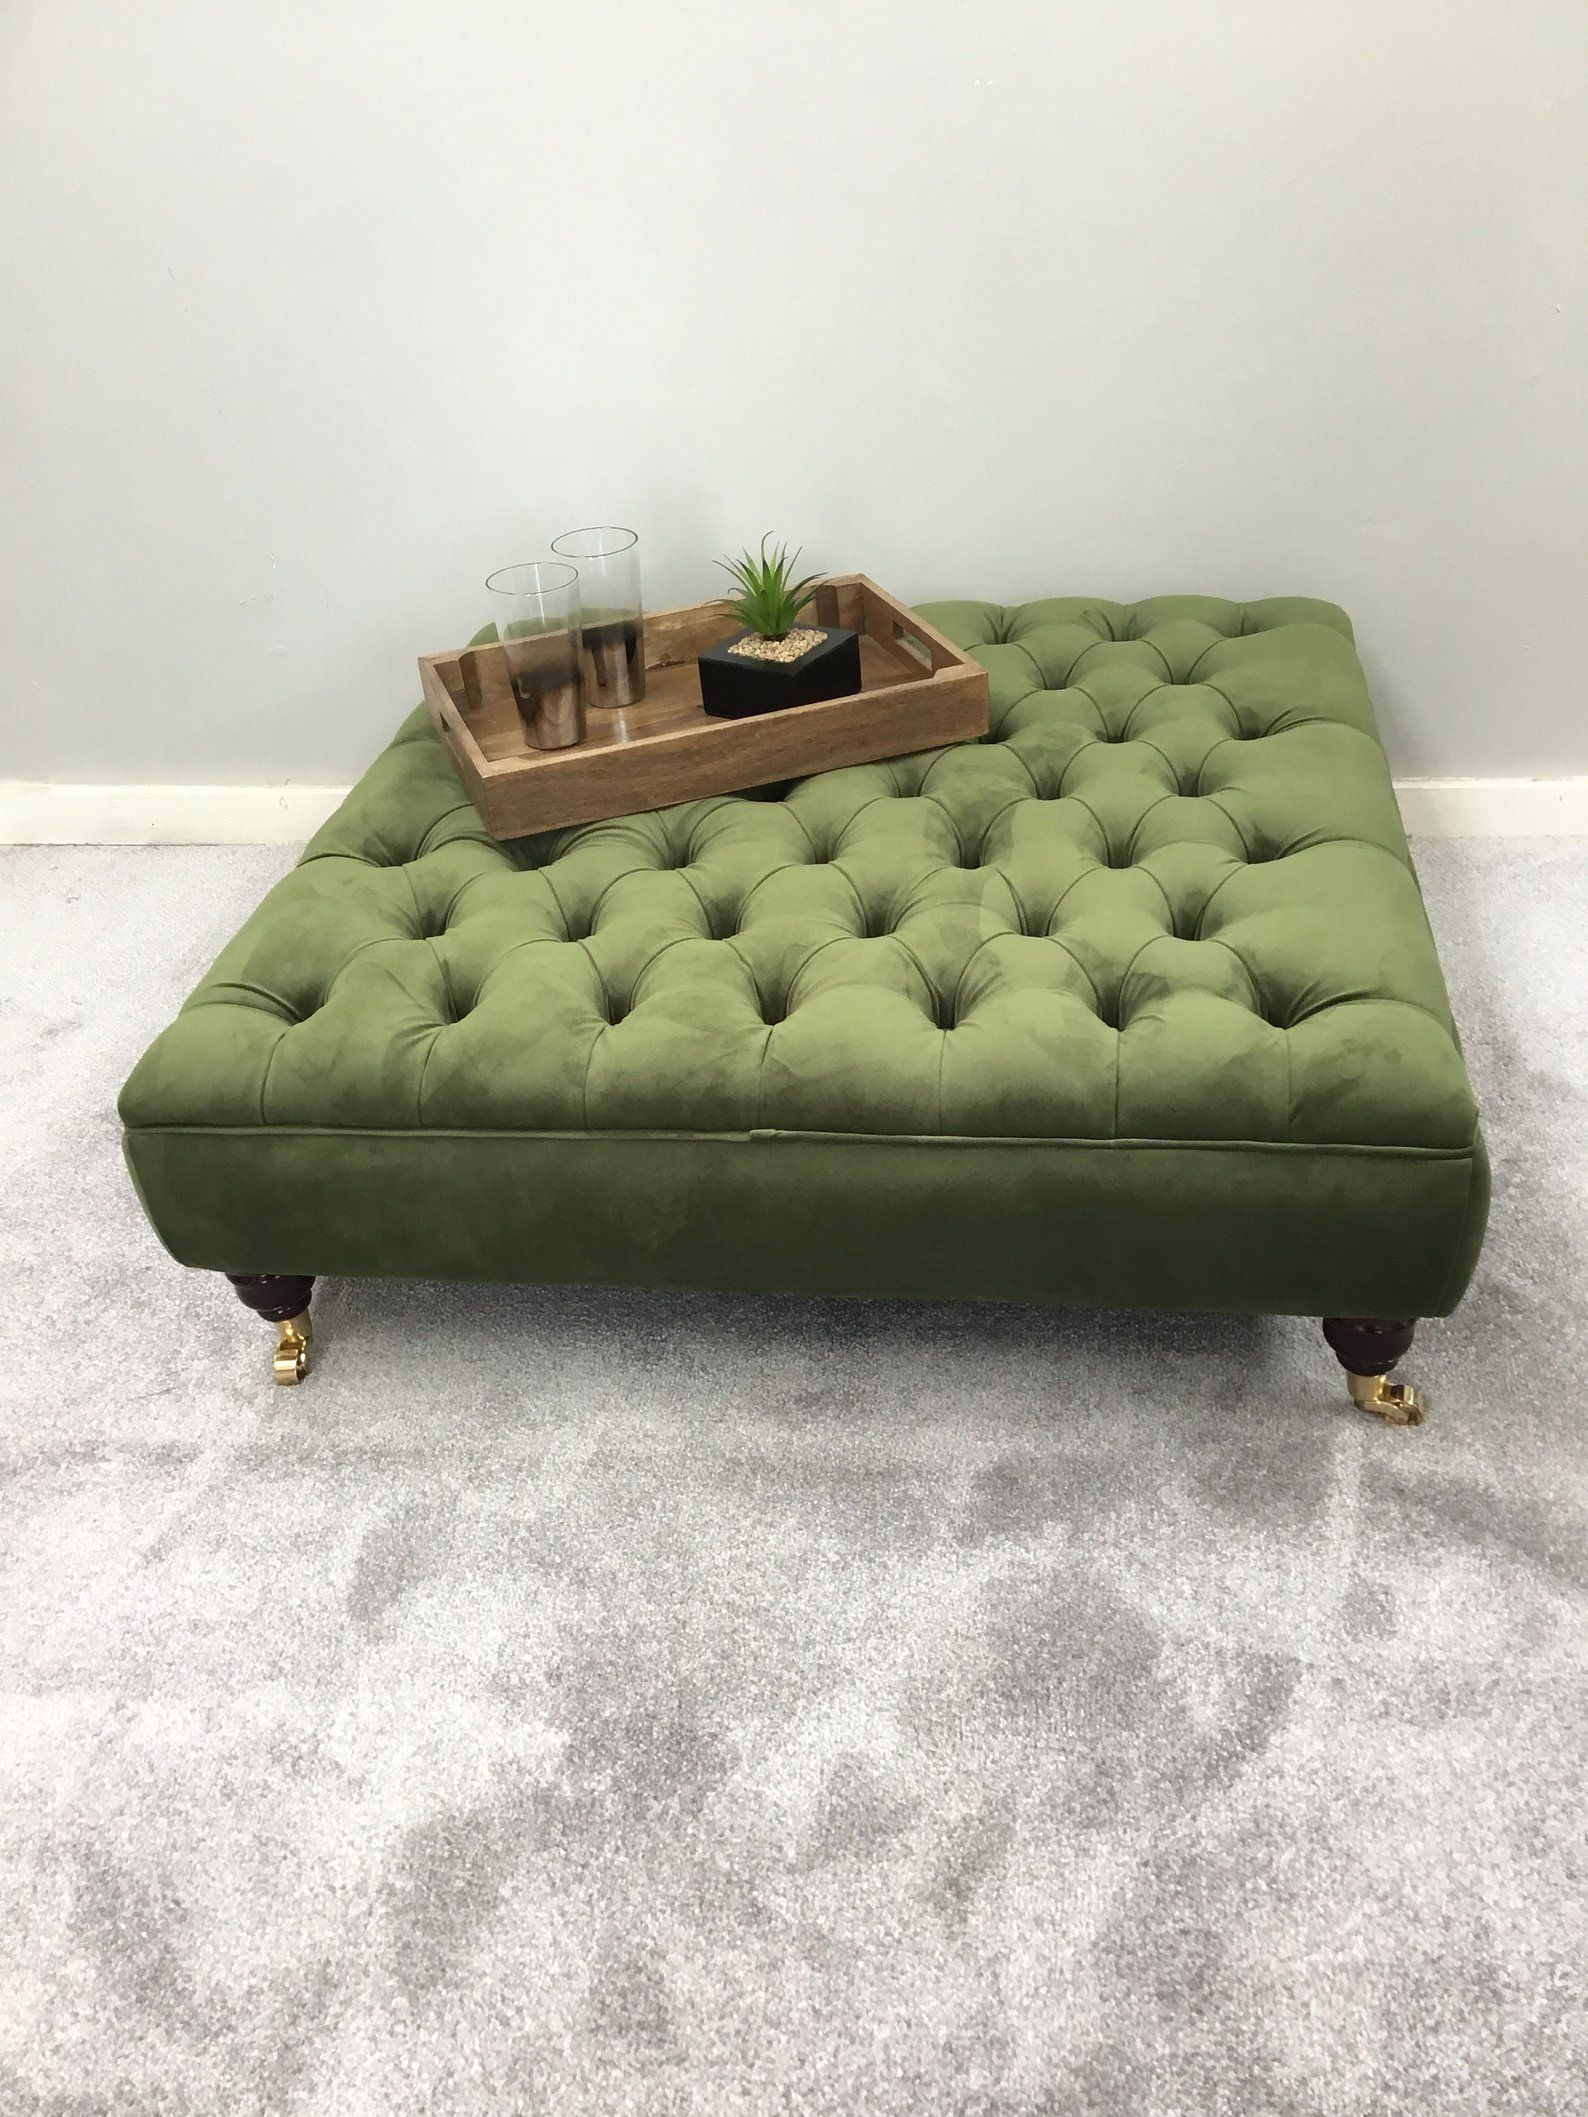 Extra Large Vine Green Footstool Coffee Table Ottoman